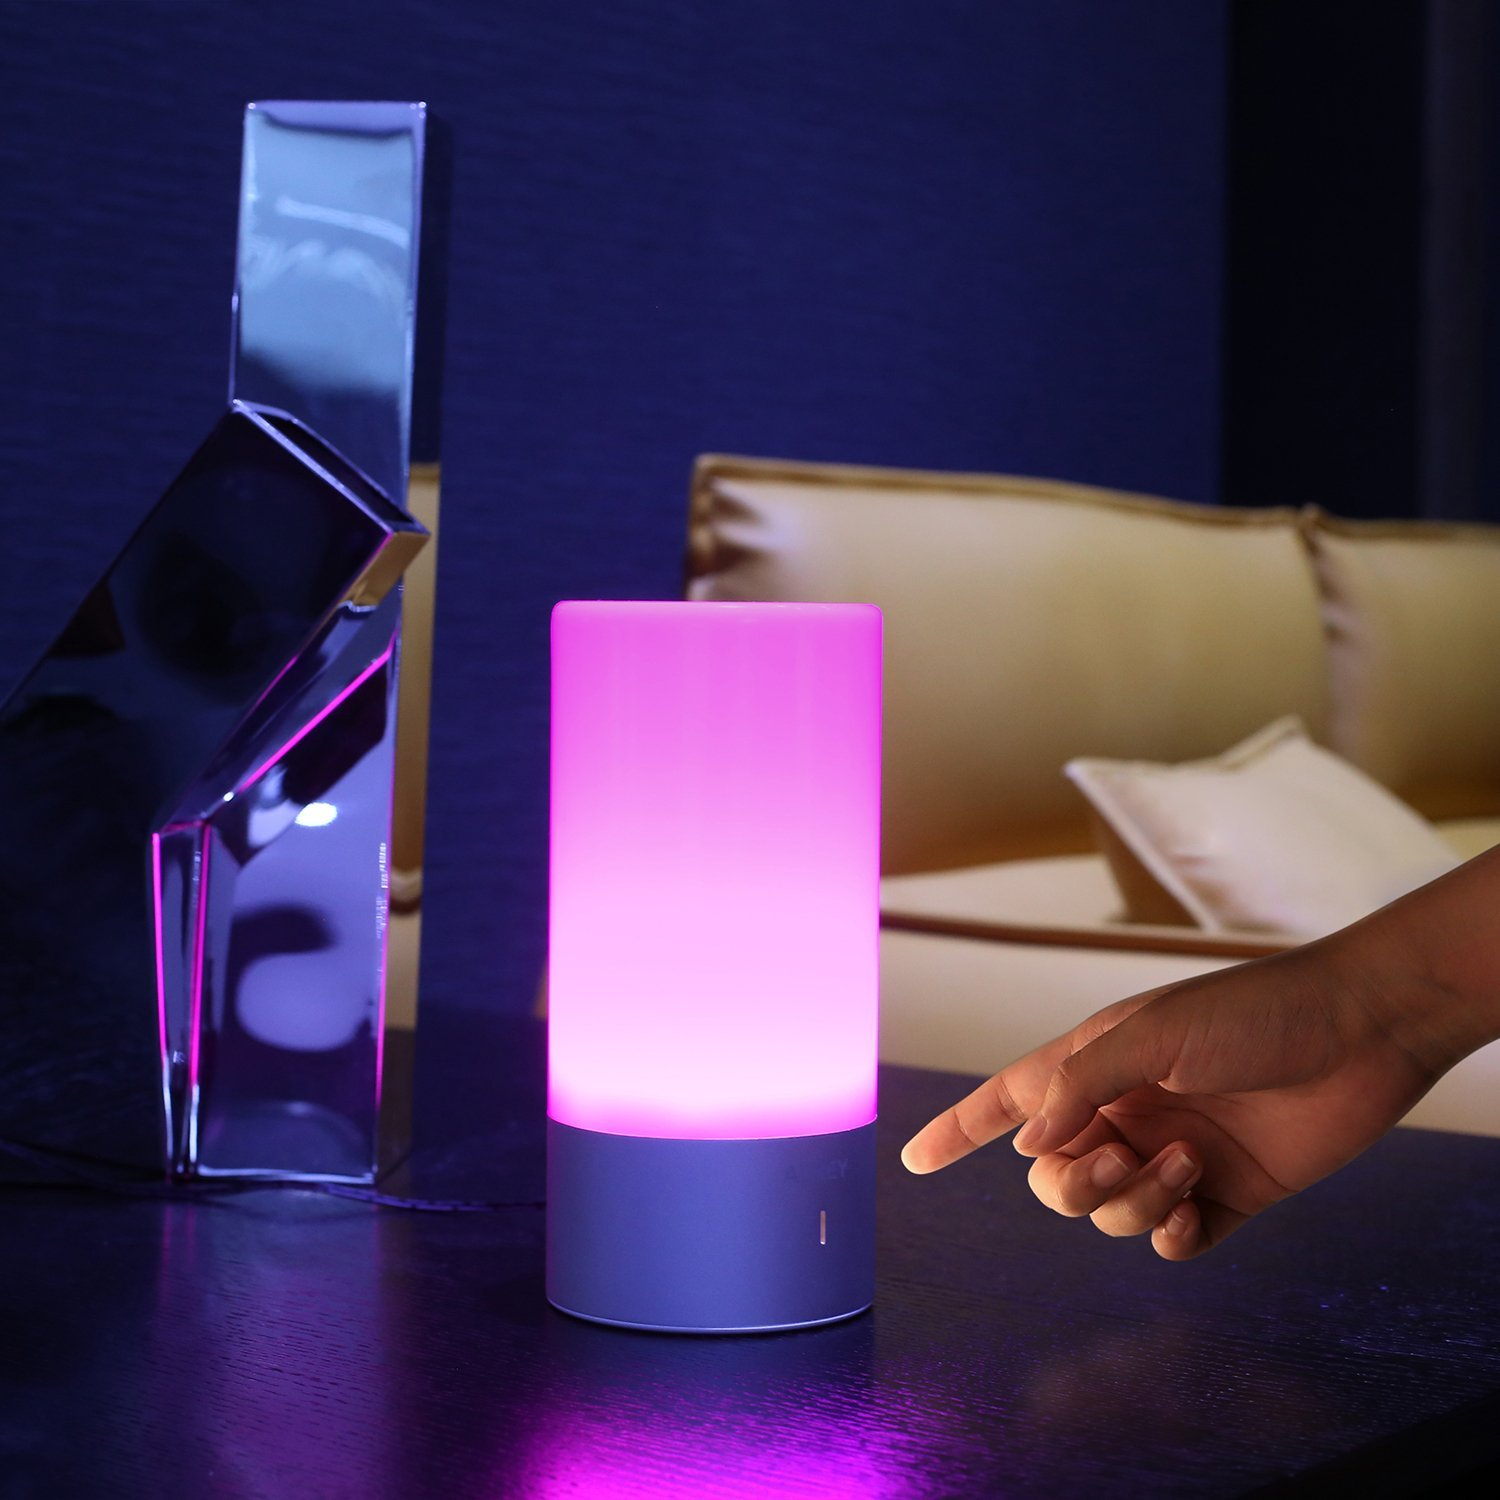 lampe de chevet led de chez aukey notre test en couleurs. Black Bedroom Furniture Sets. Home Design Ideas